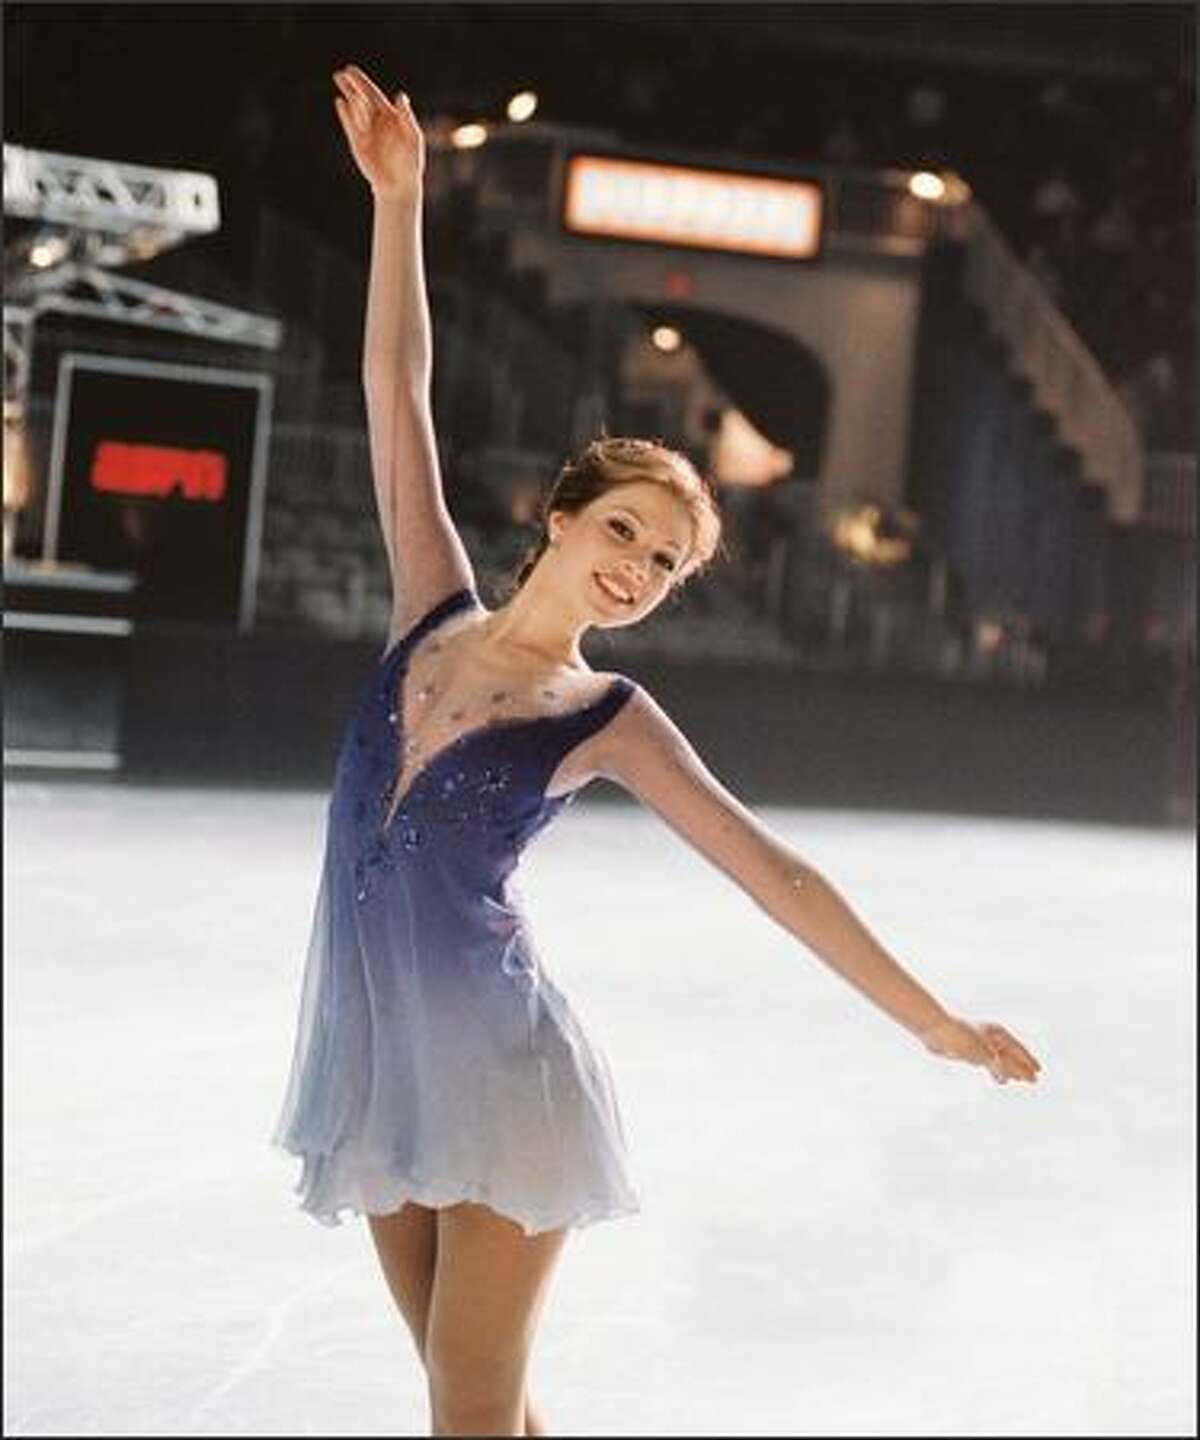 """A teen misfit who never thought she'd fit in discovers her personal edge when she risks it all to pursue her dreams of figure skating in Disney's family comedy """"Ice Princess."""""""